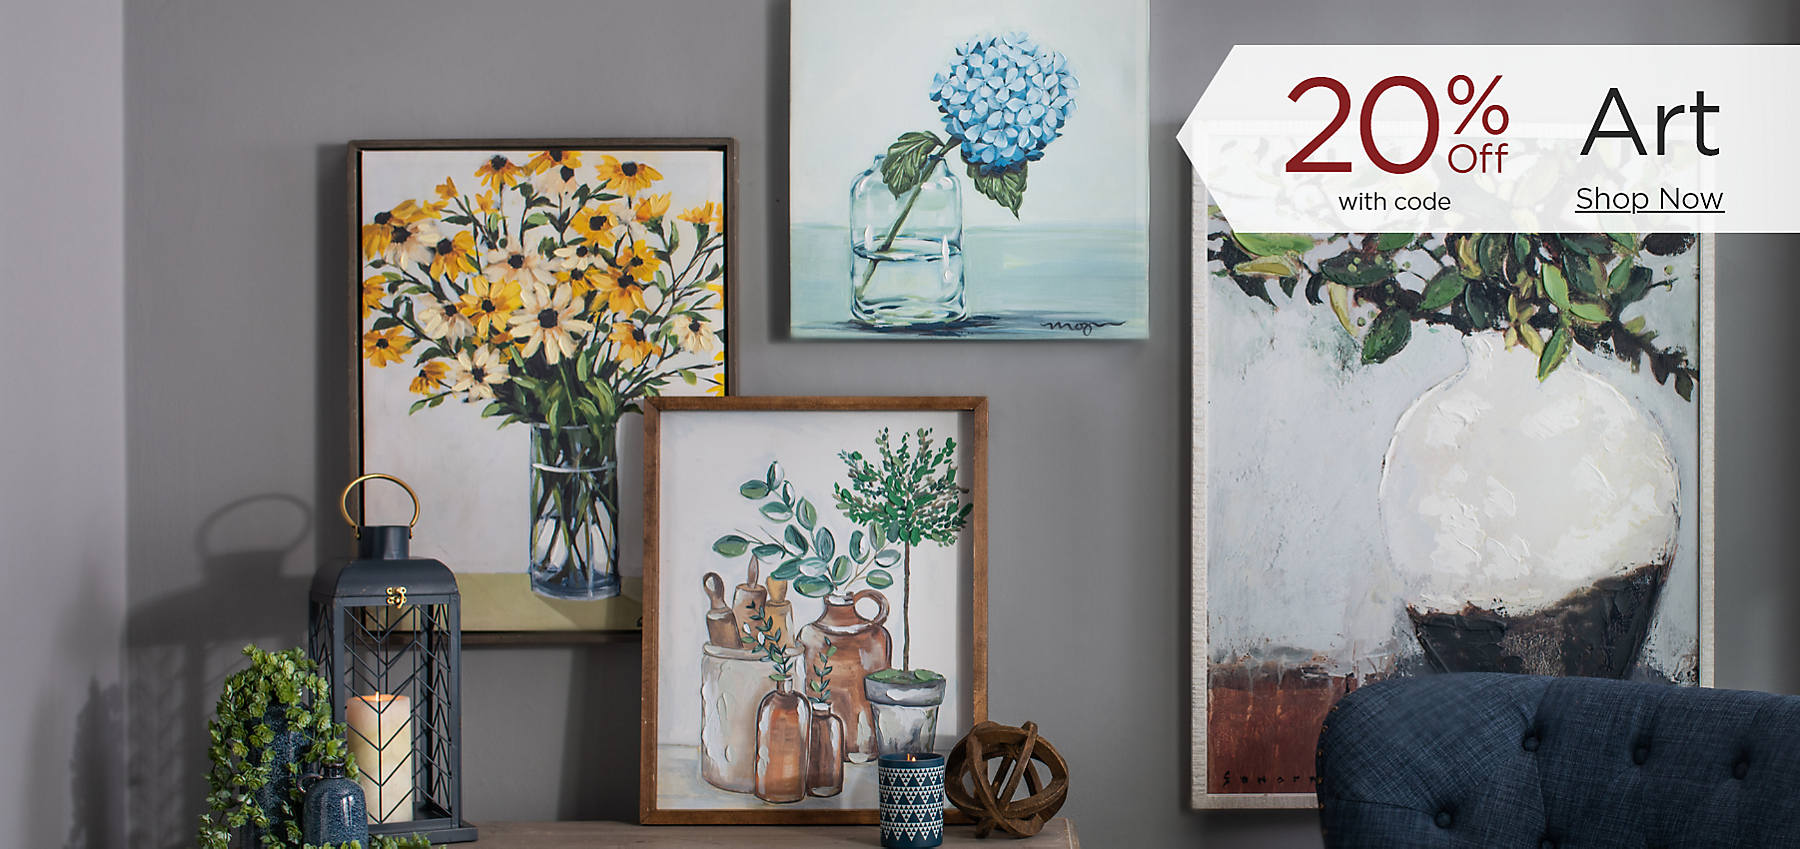 Art 20% Off with code Shop Now